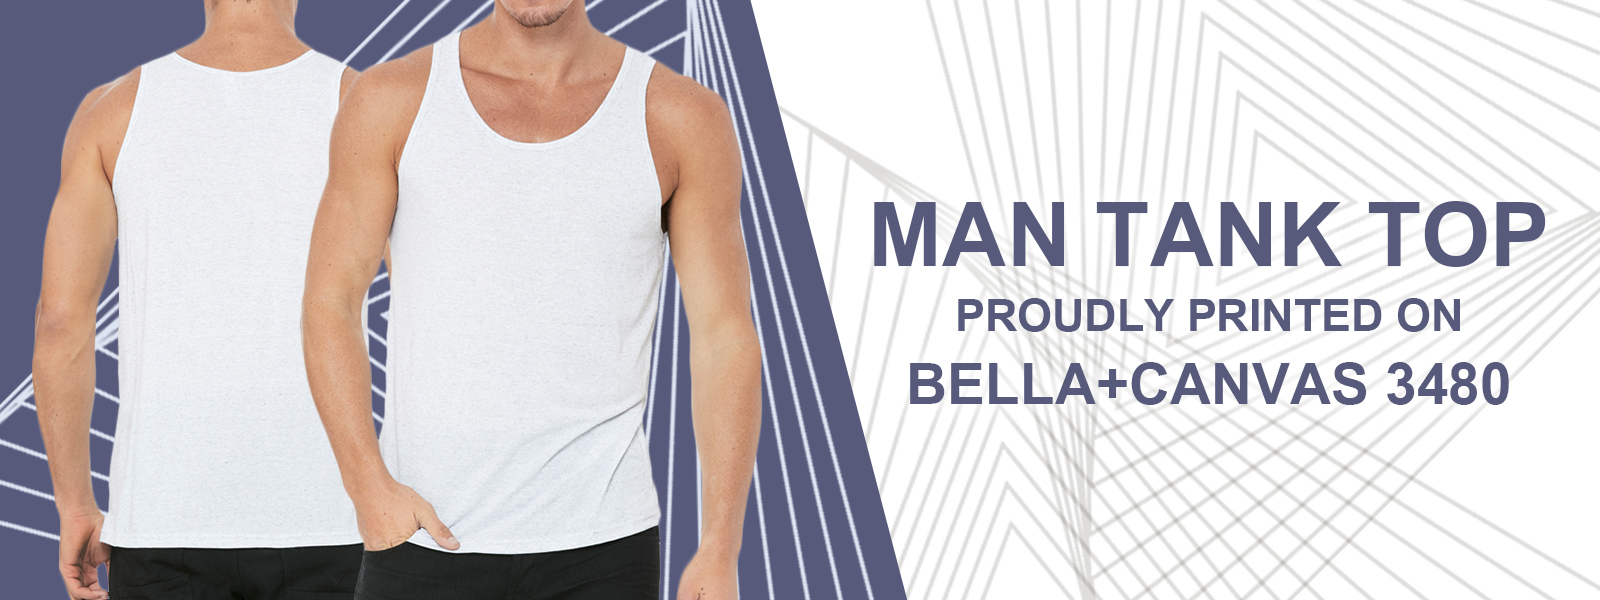 teespedia-banner-men-tank-top-category11.jpg